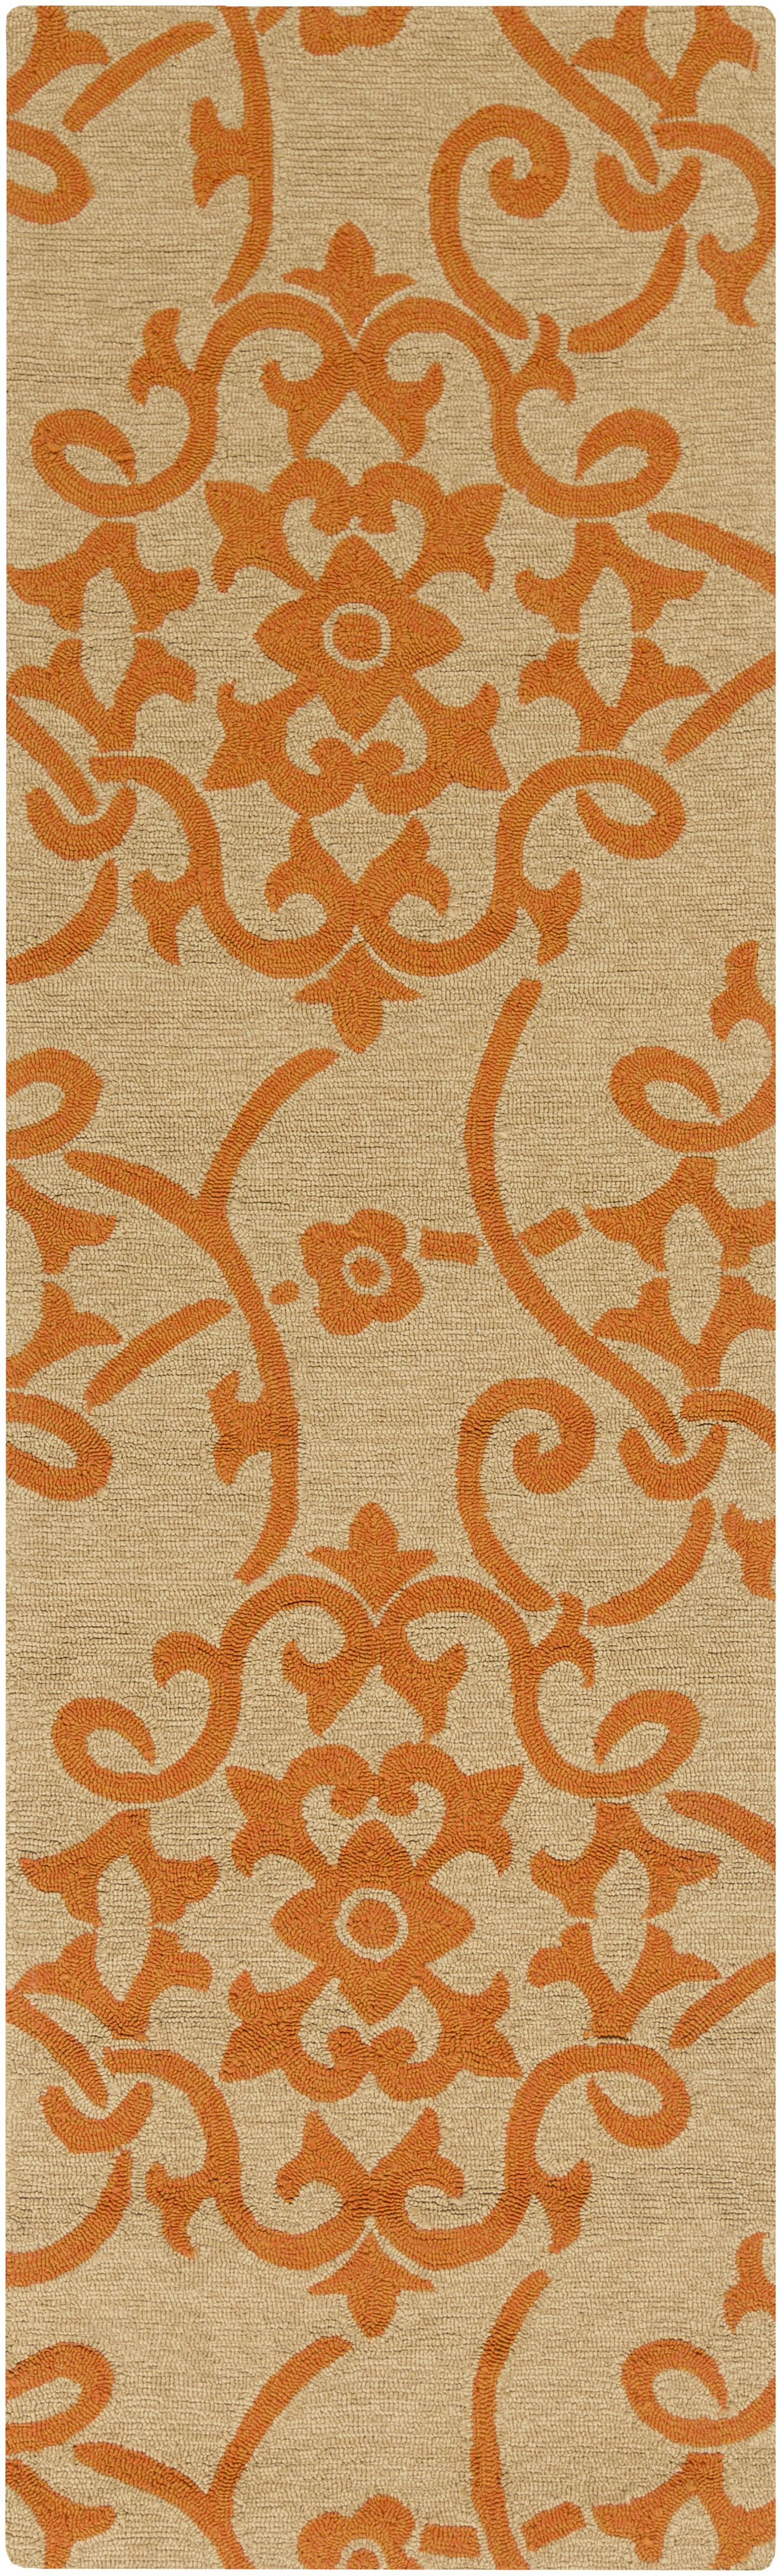 Cynthia Orange Indoor/Outdoor Area Rug Rug Size: Runner 2'6